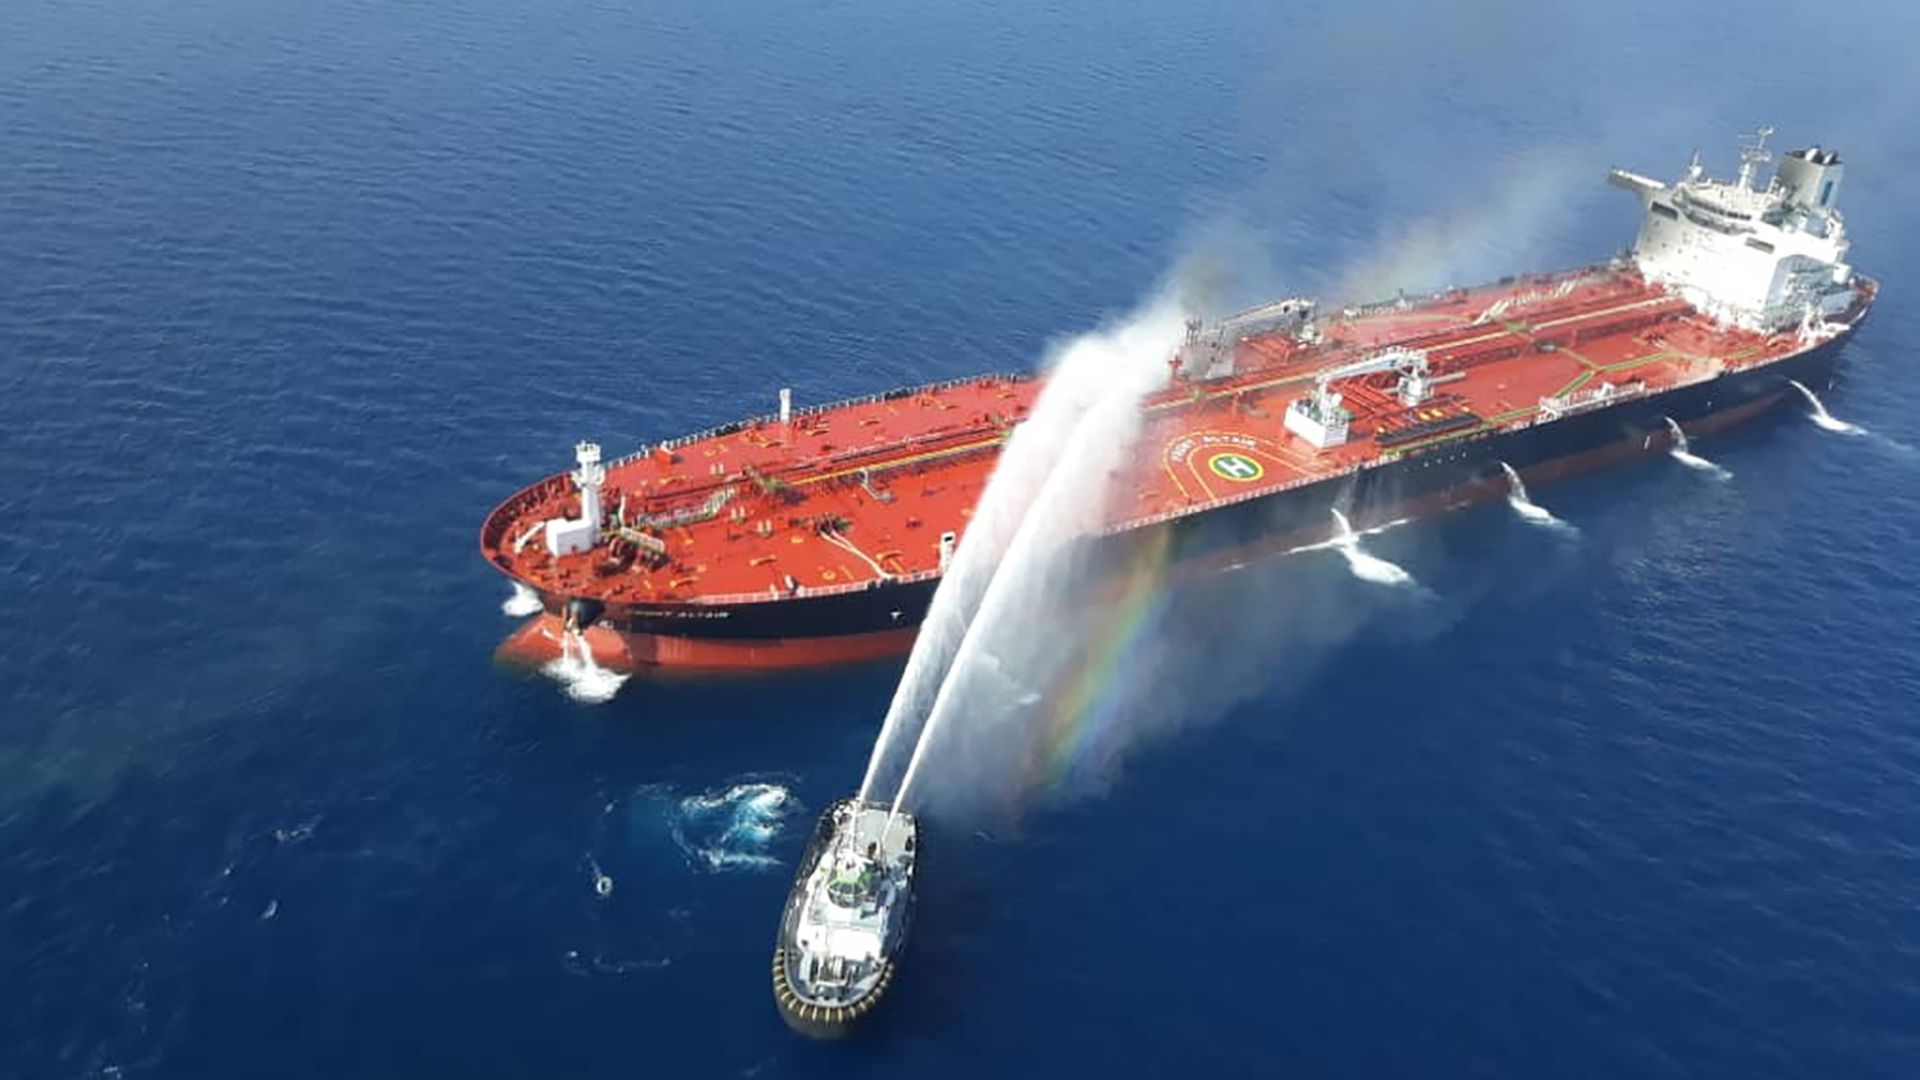 This image is a birds eye view of an oil tanker being sprayed with water from a smaller boat.